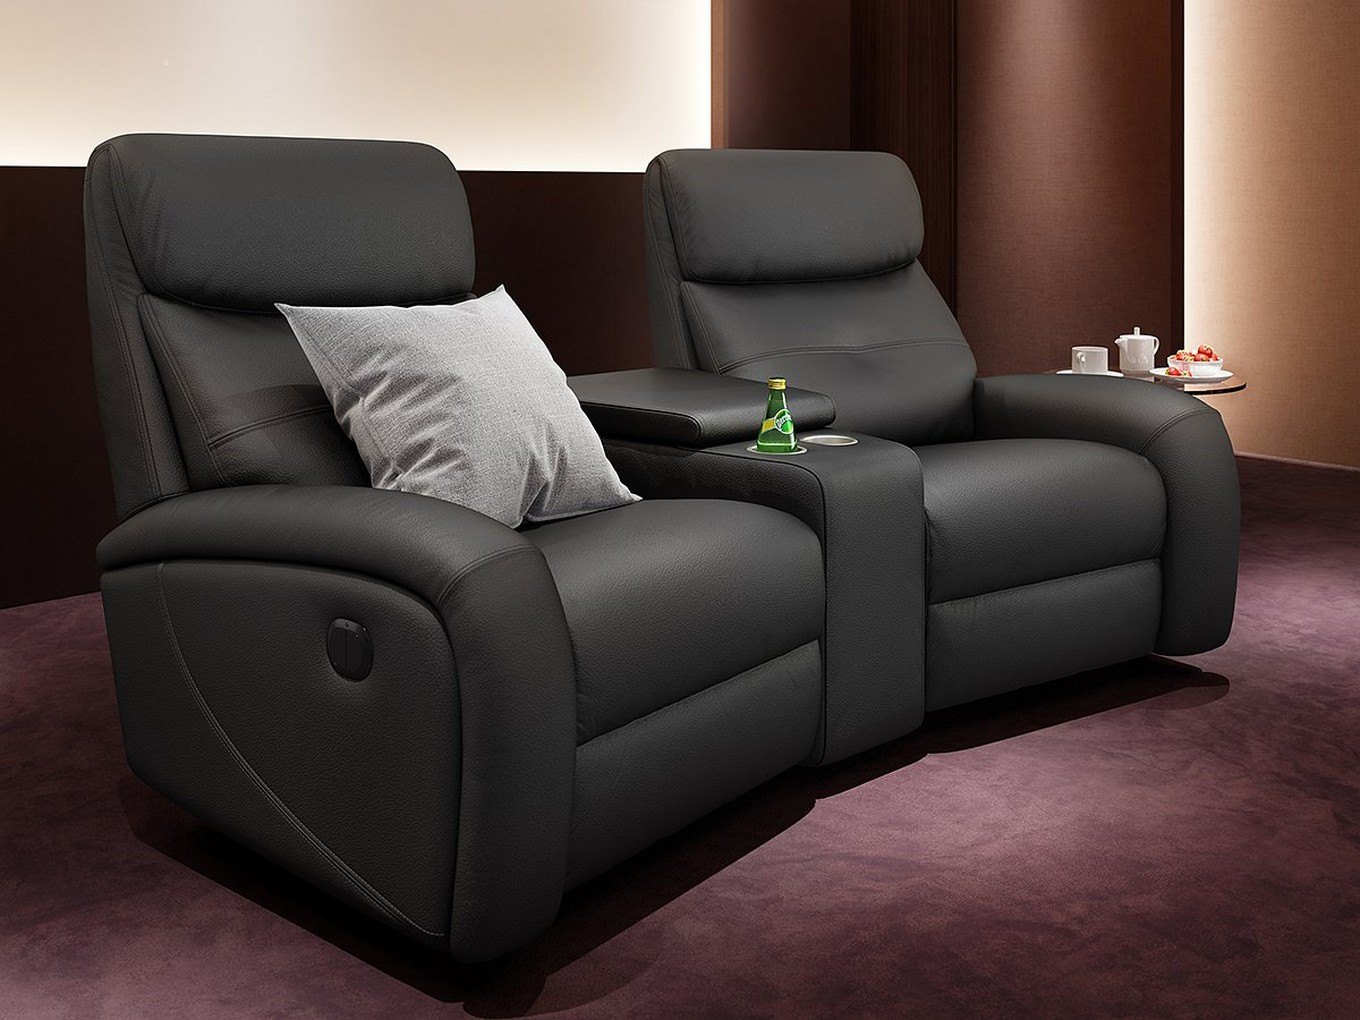 heim kinosofa leder garnitur relax couch tv sofa kino sessel fernsehsessel 2er ebay. Black Bedroom Furniture Sets. Home Design Ideas